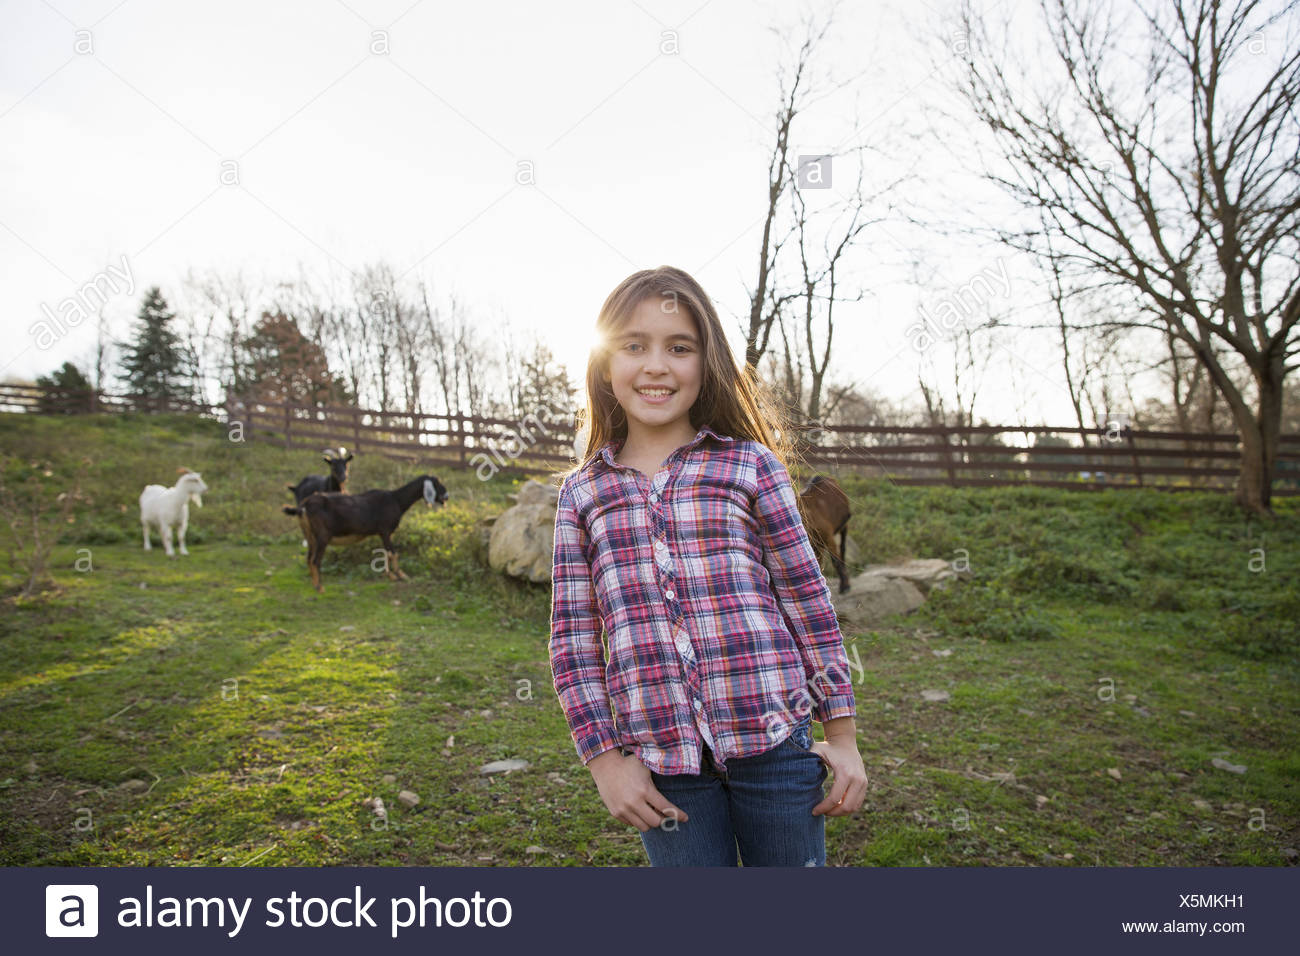 A child, a young girl in the goat paddock enclosure at an animal sanctuary. - Stock Image